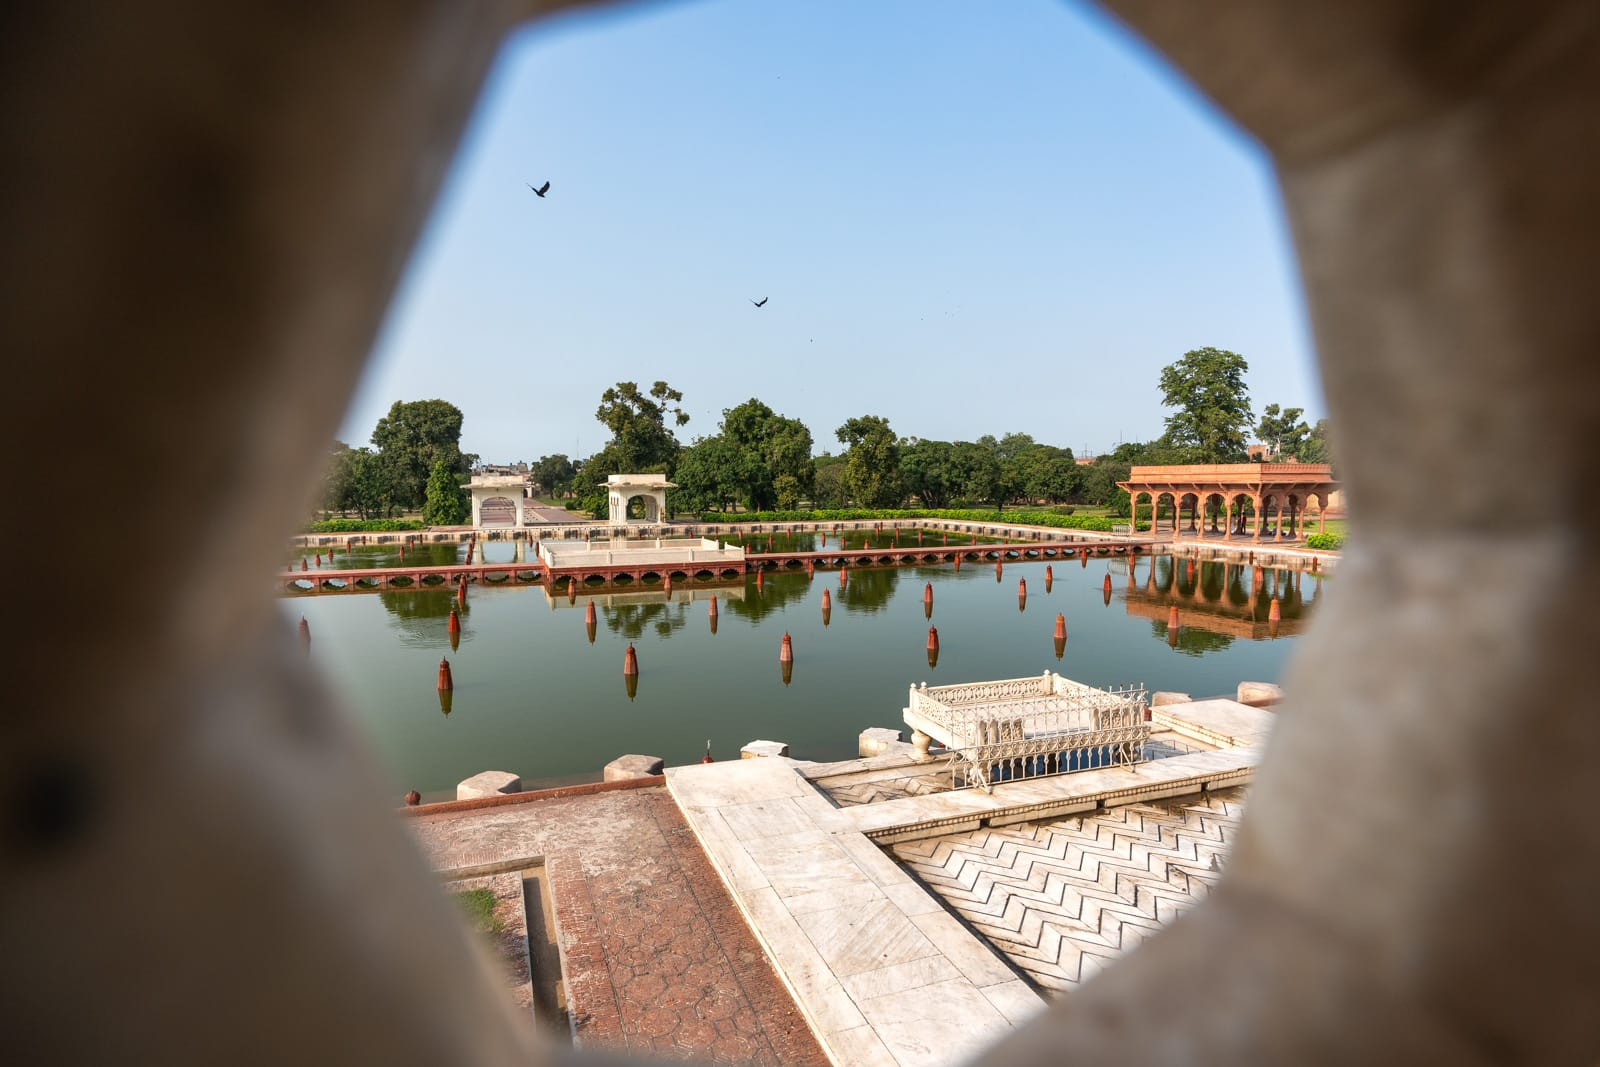 View through hole of Shalimar Gardens in Lahore, Pakistan